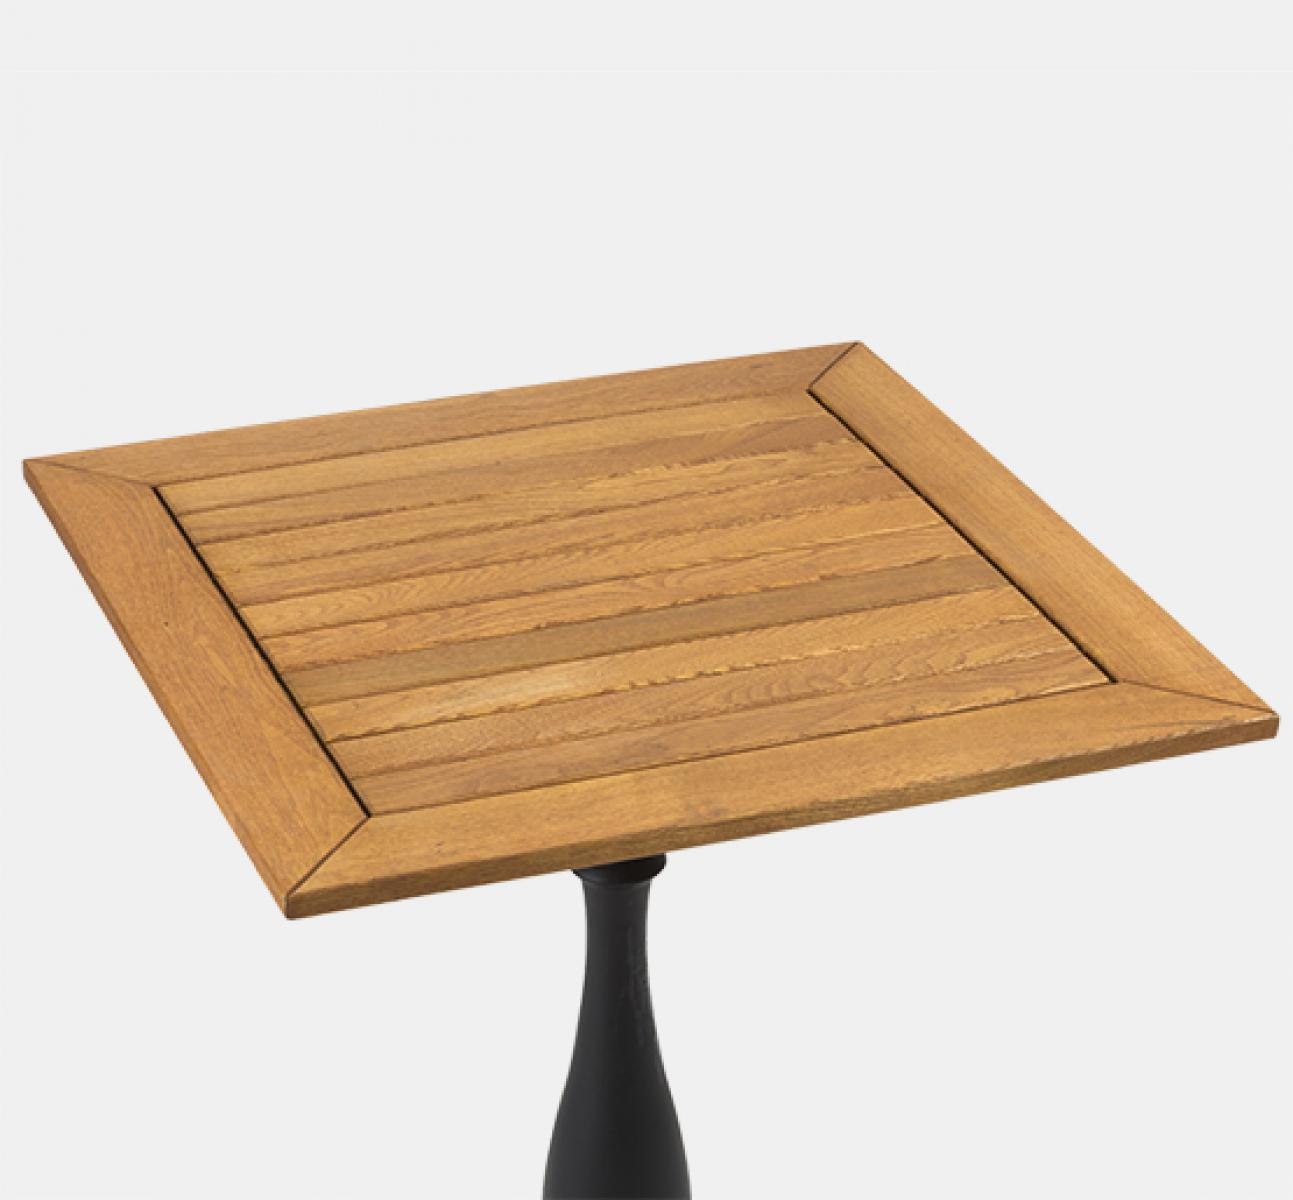 Robinia Square Table Top